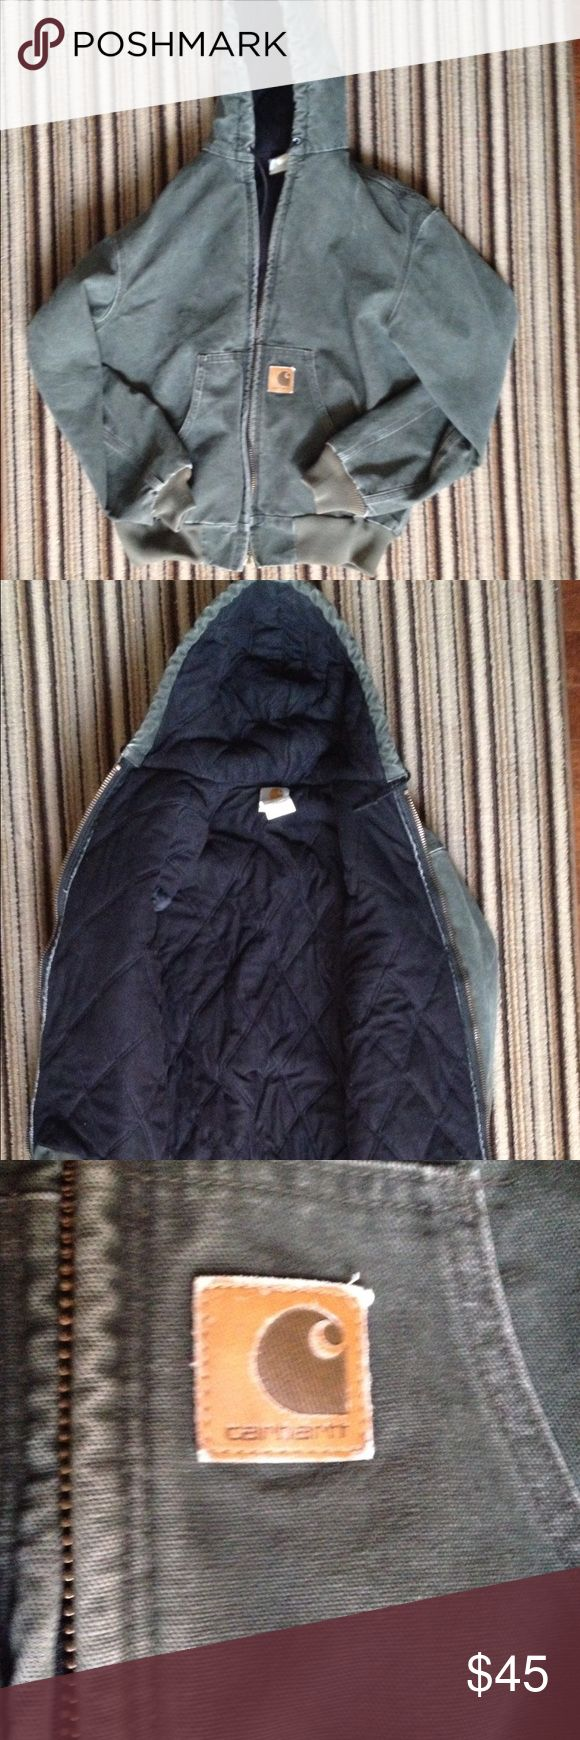 Carhartt Heavy lined Hooded Jacket! Heathered Hunter Green Carhartt Hooded Lined Jacket. Heavy and warm!! EUC. Would make a great addition to winter wardrobe! No rips, tears, or stains. Freshly laundered. Size Medium. Would fit a 10/12 with room for a lighter sweatshirt or lighter sweater underneath. Pit to Pit is 25 inches. Shoulder to Hem is 25 inches. Carhartt Jackets & Coats